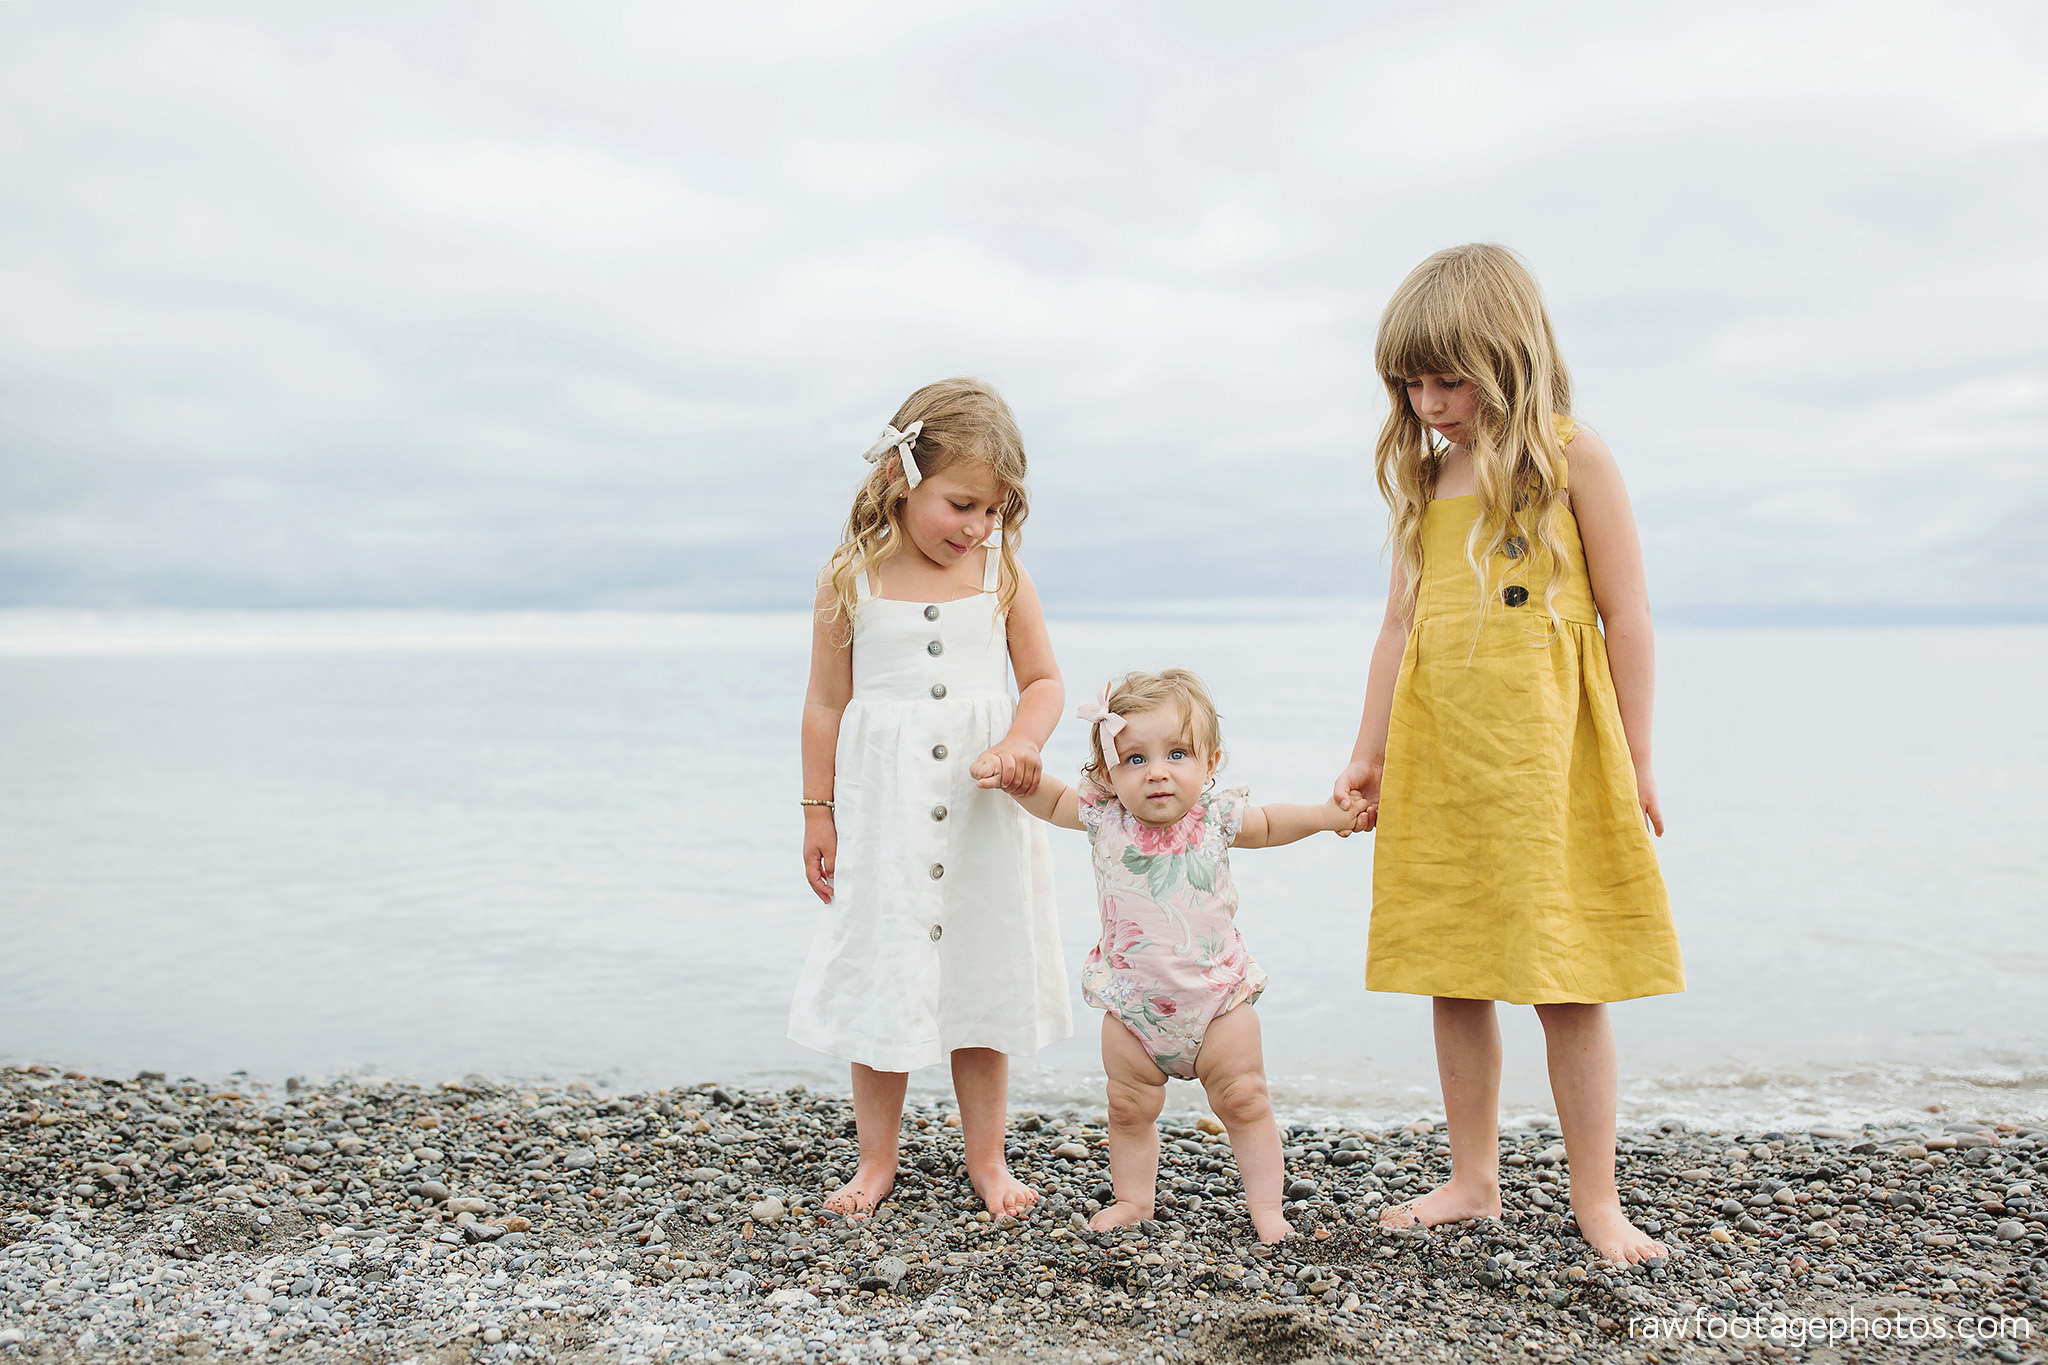 london_ontario_family_photographer-beach_minis-port_stanley_beach-raw_footage_photography049.jpg